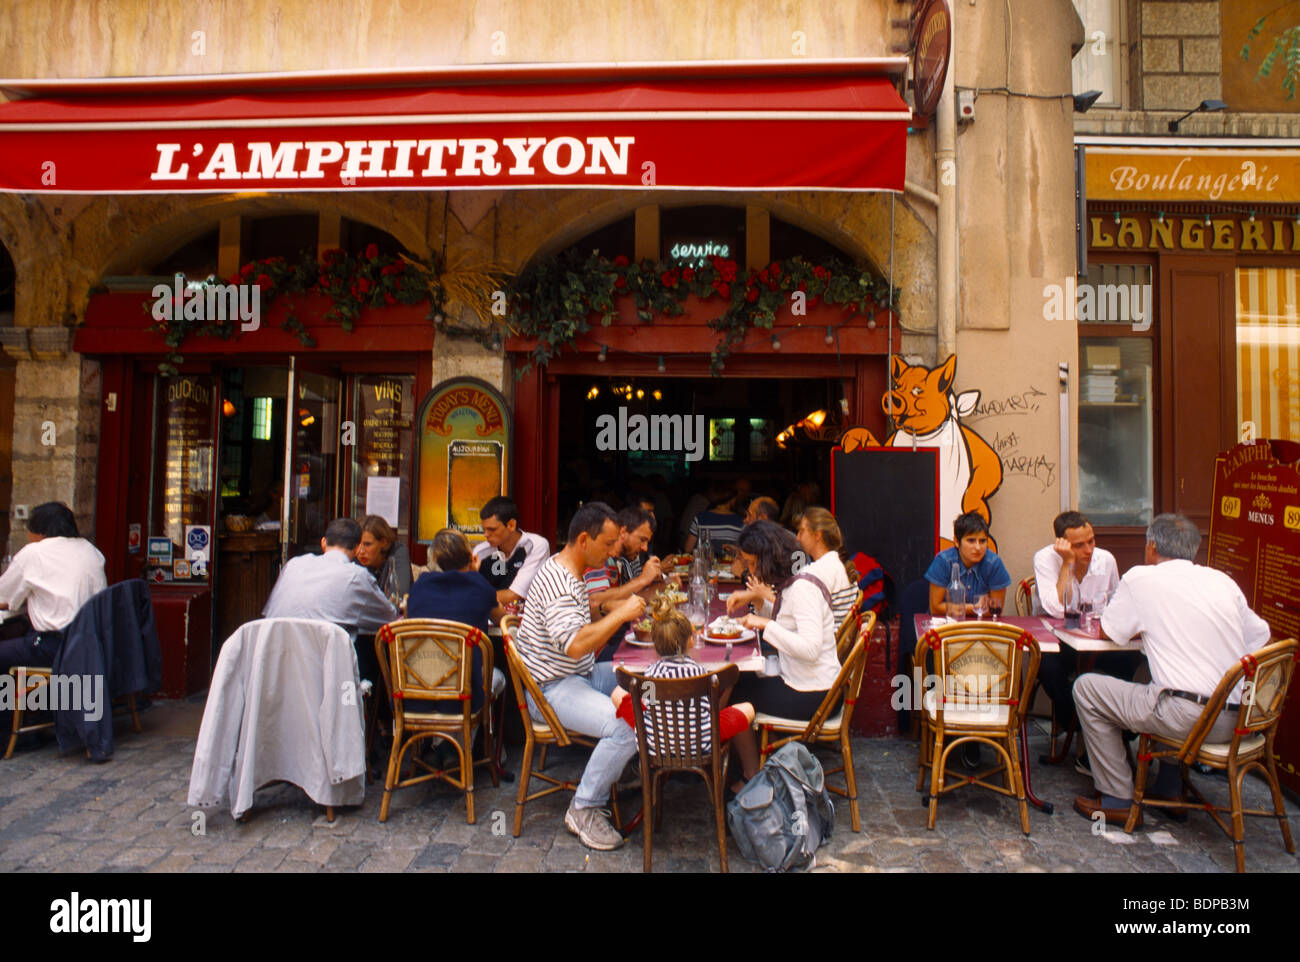 lyon france rue st jean restaurant l 39 amphitryon stock photo royalty free image 25692568 alamy. Black Bedroom Furniture Sets. Home Design Ideas